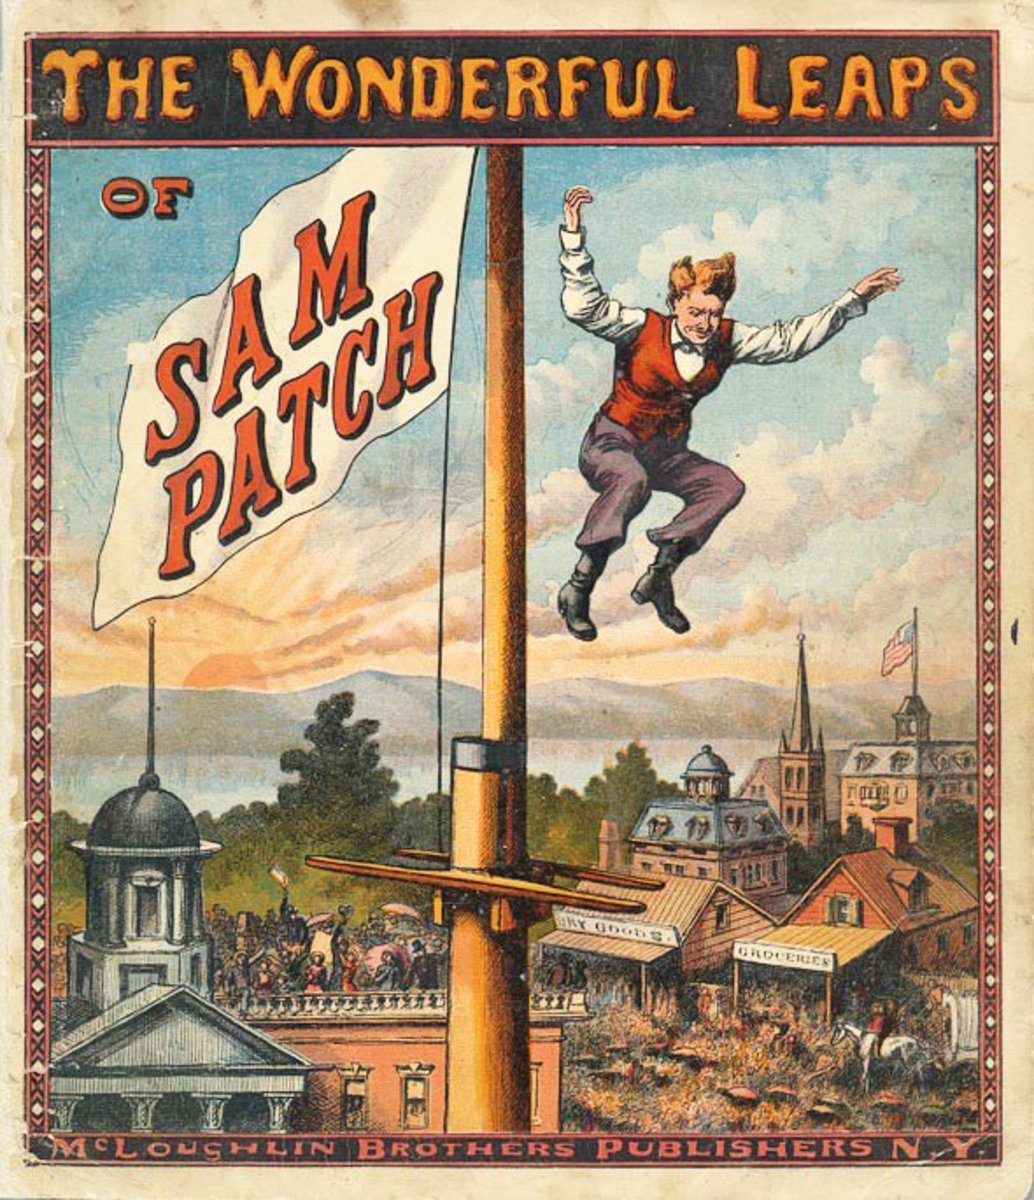 Cover illustration for The Wonderful Leaps of Sam Patch, published by McLaughlin Brothers, 1870.